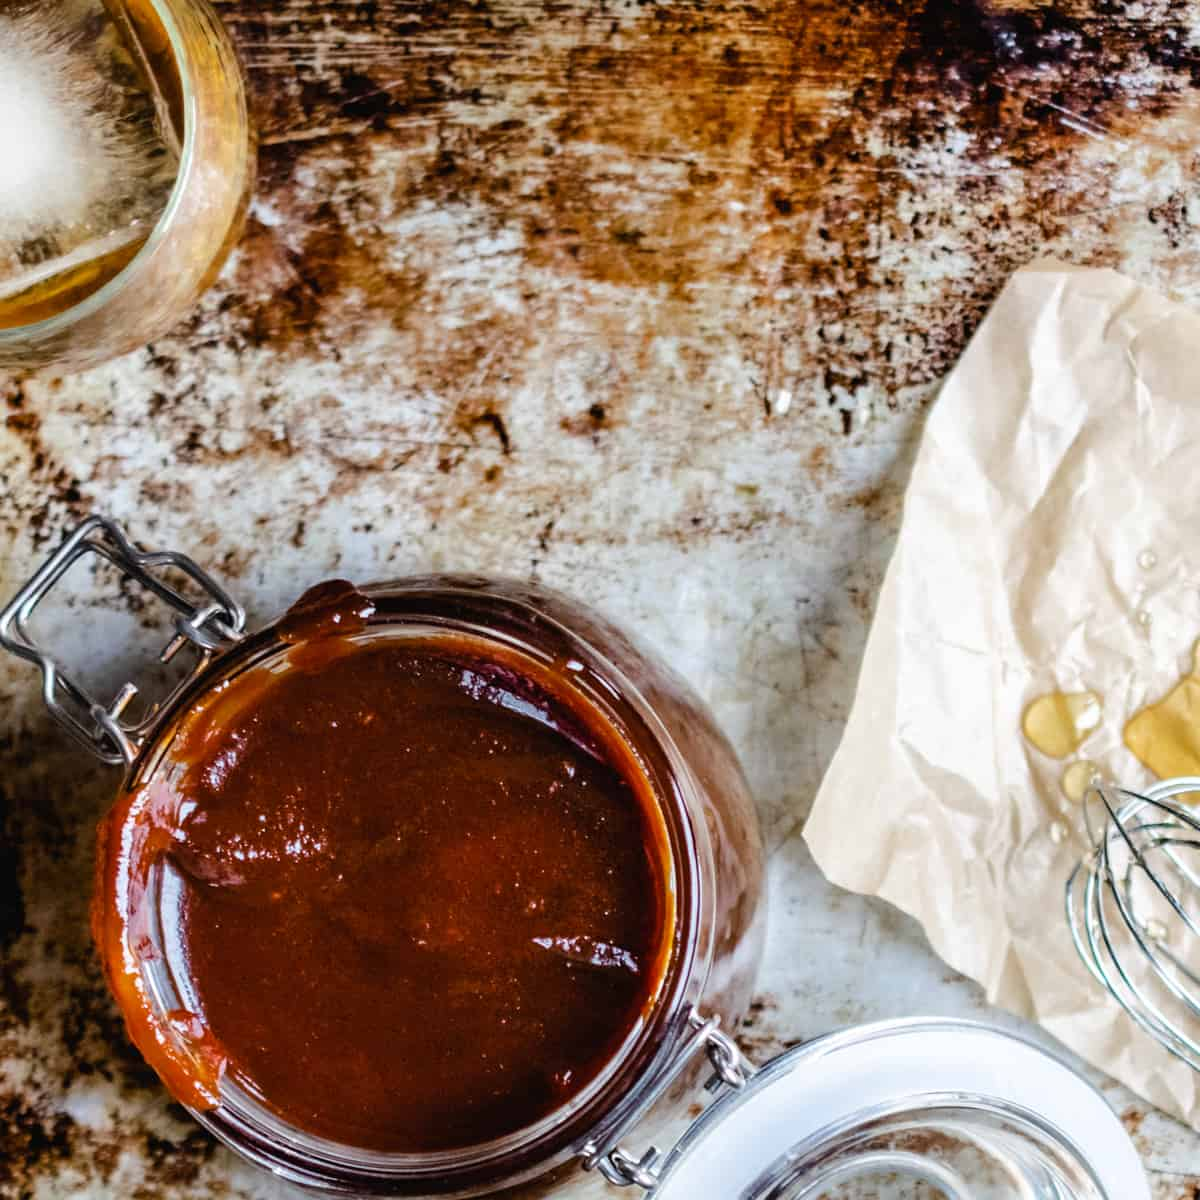 A jar of barbecue sauce next to a whisk with honey on it and glass of bourbon with ice.